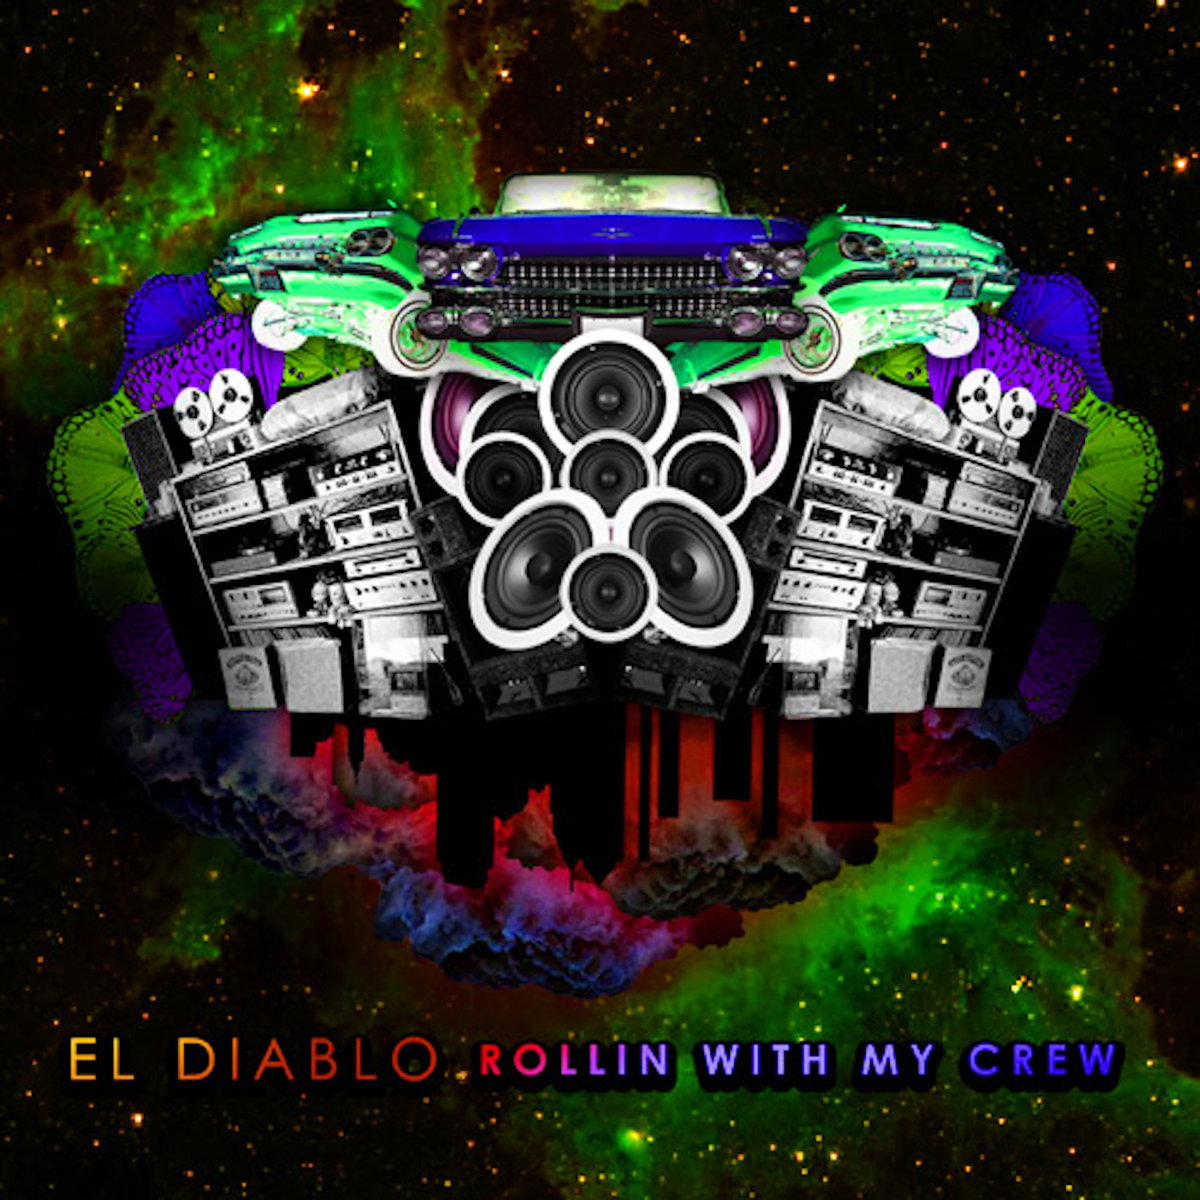 El Diablo - The Devil's Stance @ 'Rollin With My Crew' album (electronic, dubstep)